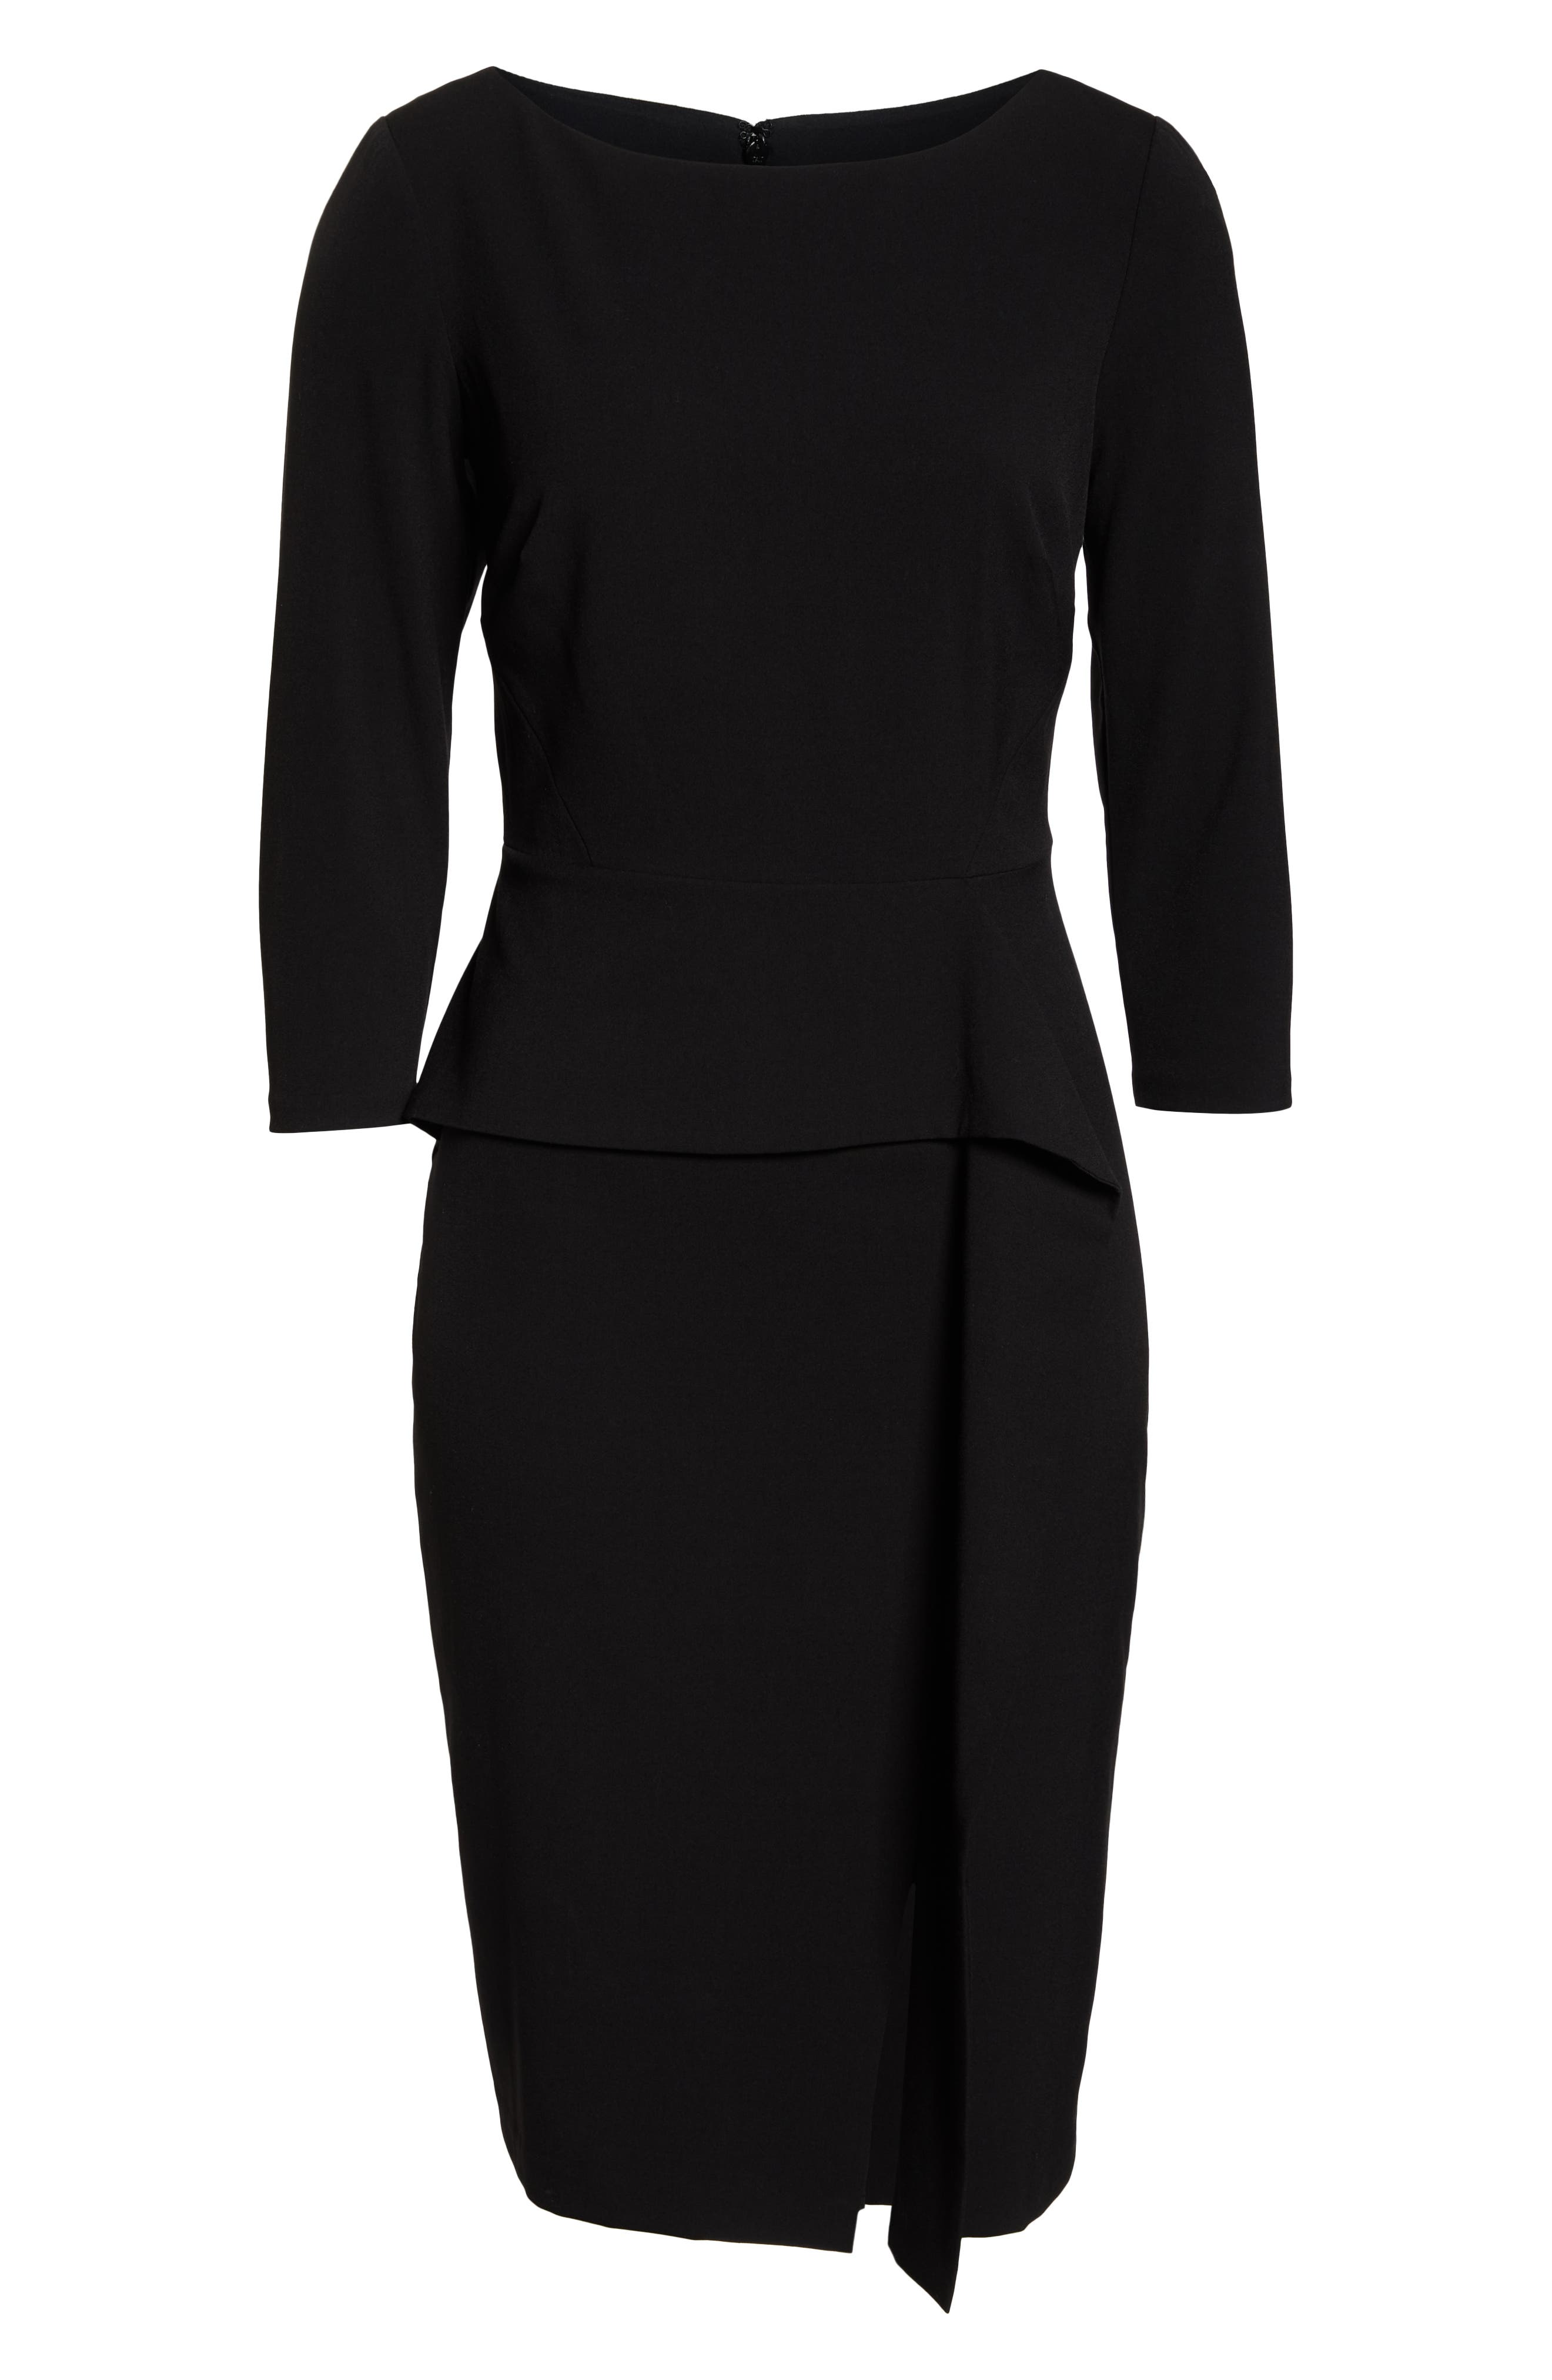 VINCE CAMUTO, Angled Ruffle Sheath Dress, Alternate thumbnail 7, color, BLACK